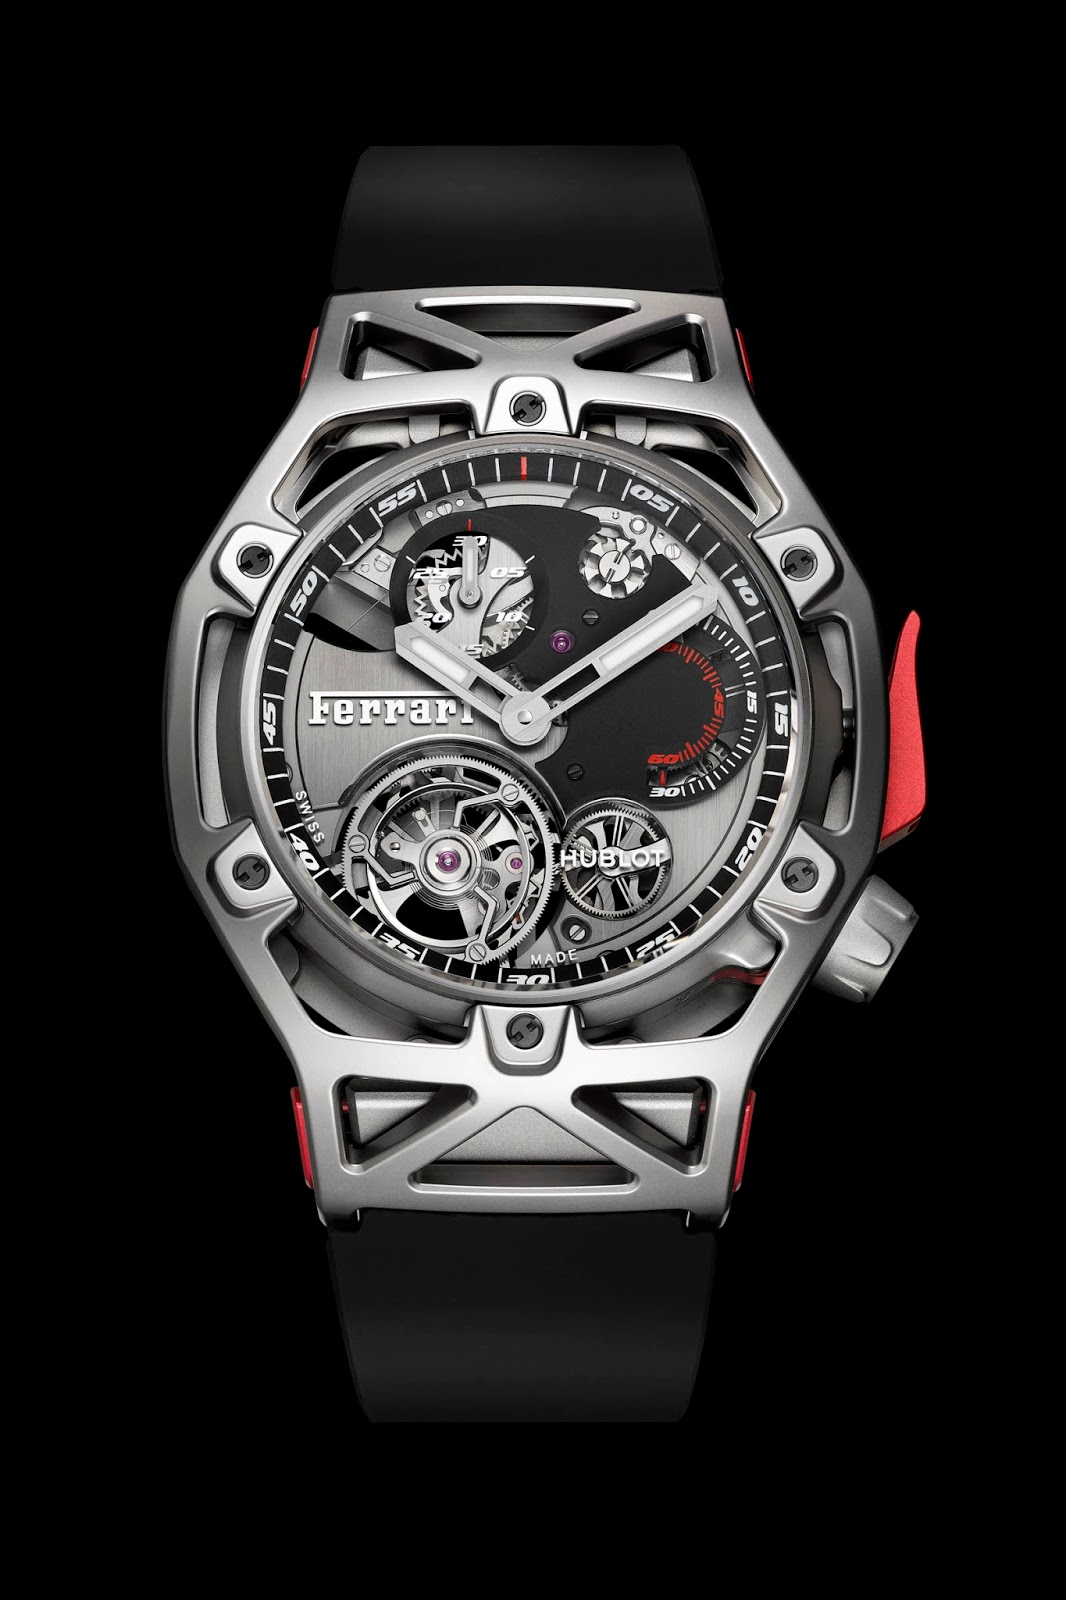 hublot 39 s new tourbillon chronograph is a ferrari for your wrist carscoops. Black Bedroom Furniture Sets. Home Design Ideas